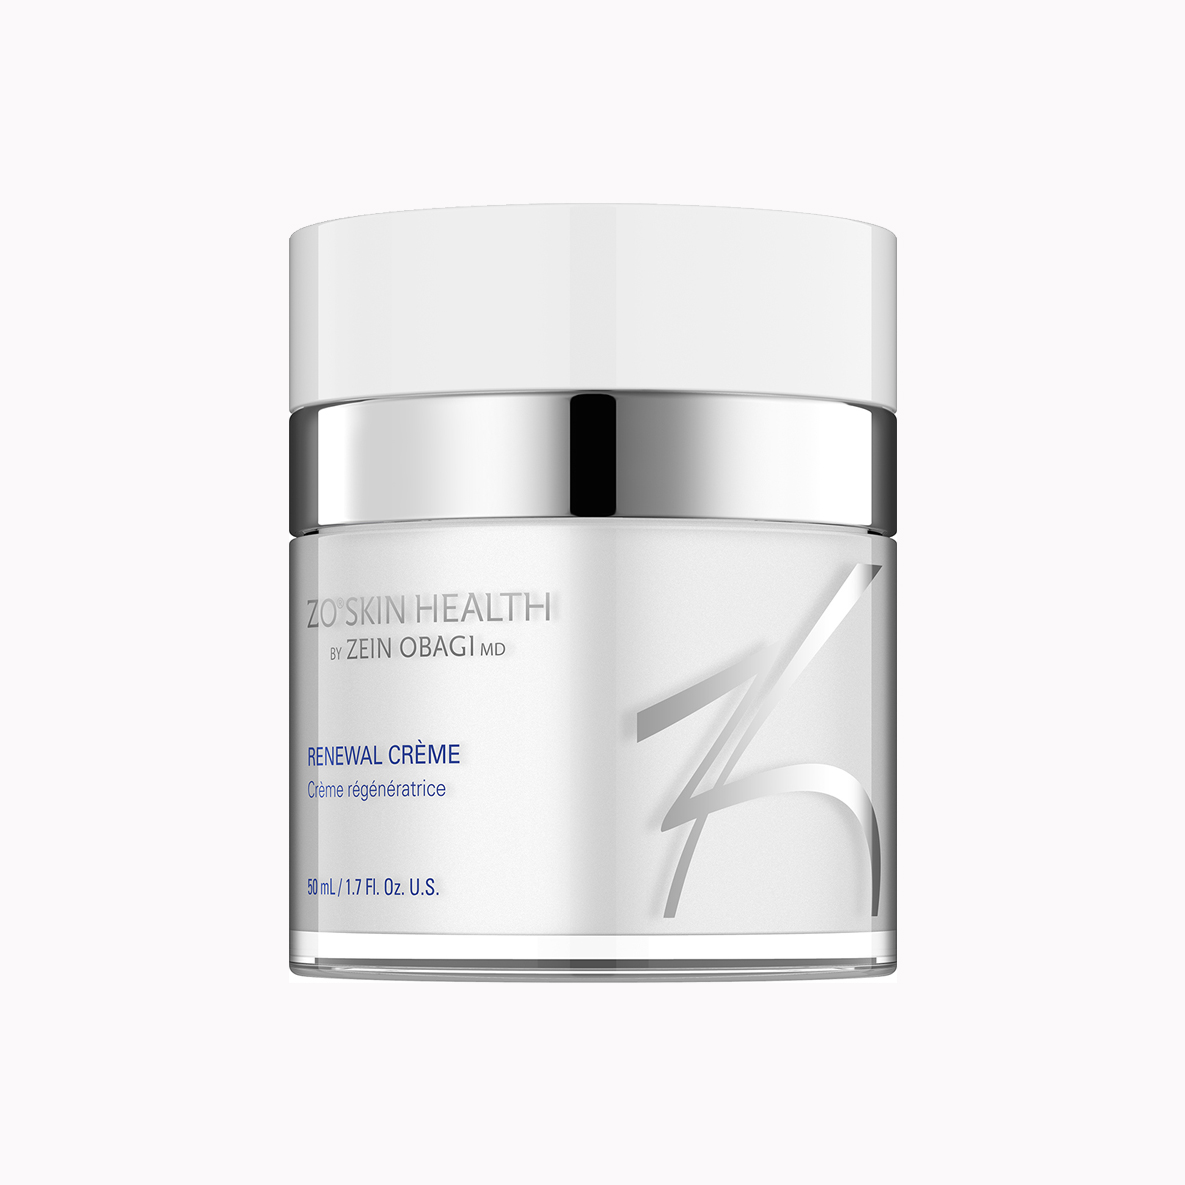 Dermanet.no - ZO Skin Health Renewal Creme